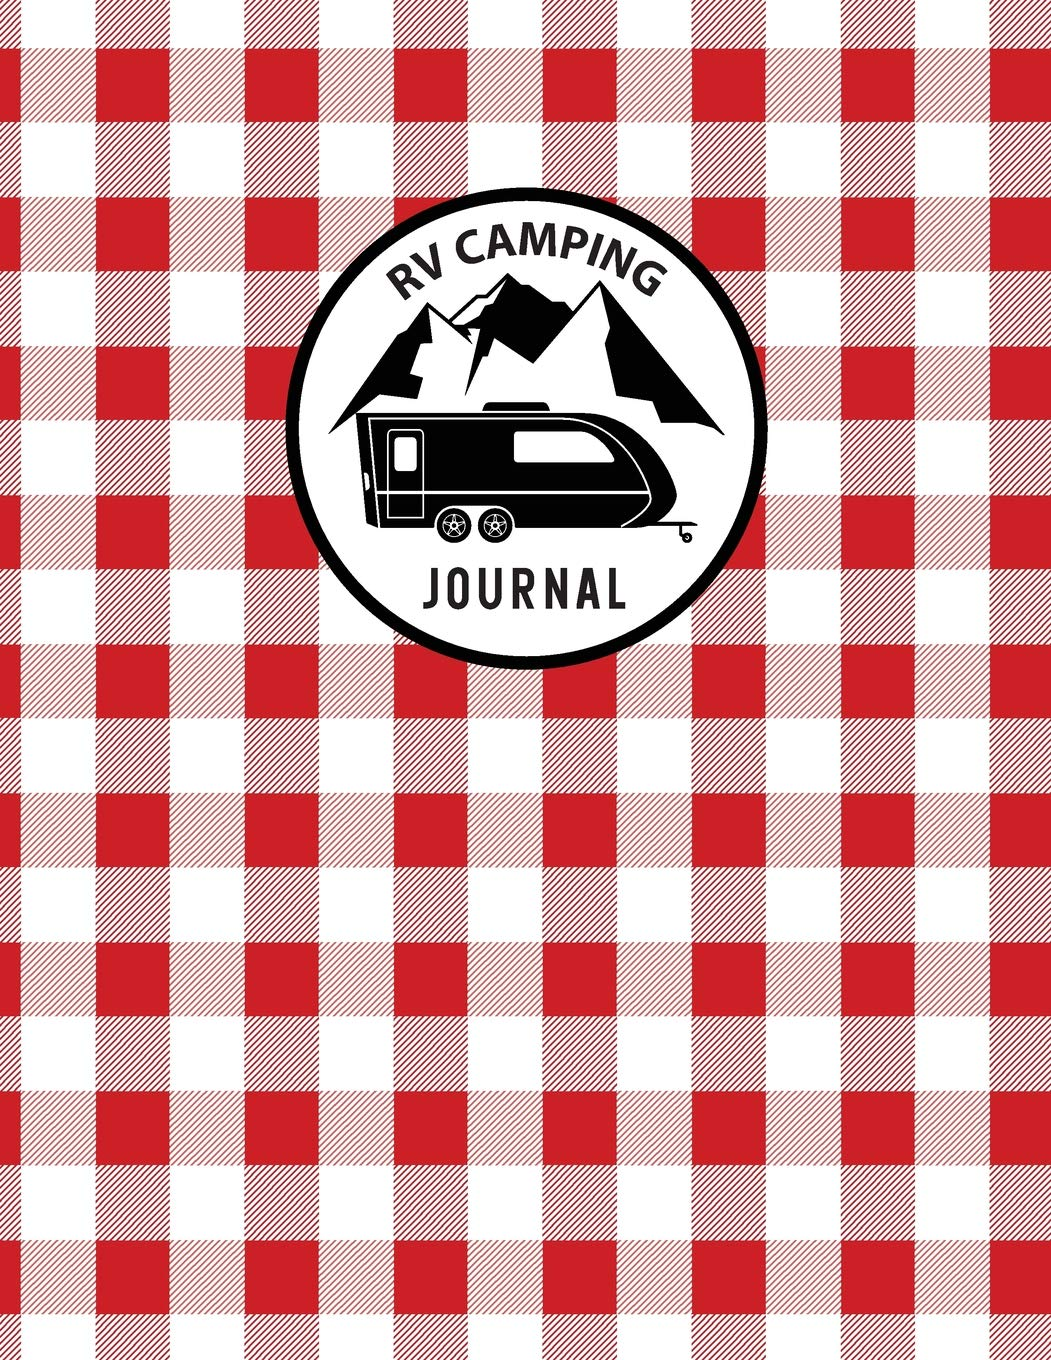 Gift For Campers Camp Accessories For Travel Memories Perfect RV Diary RV There Yet?: Family Camping Journal 150 Pages With Prompts For Writing